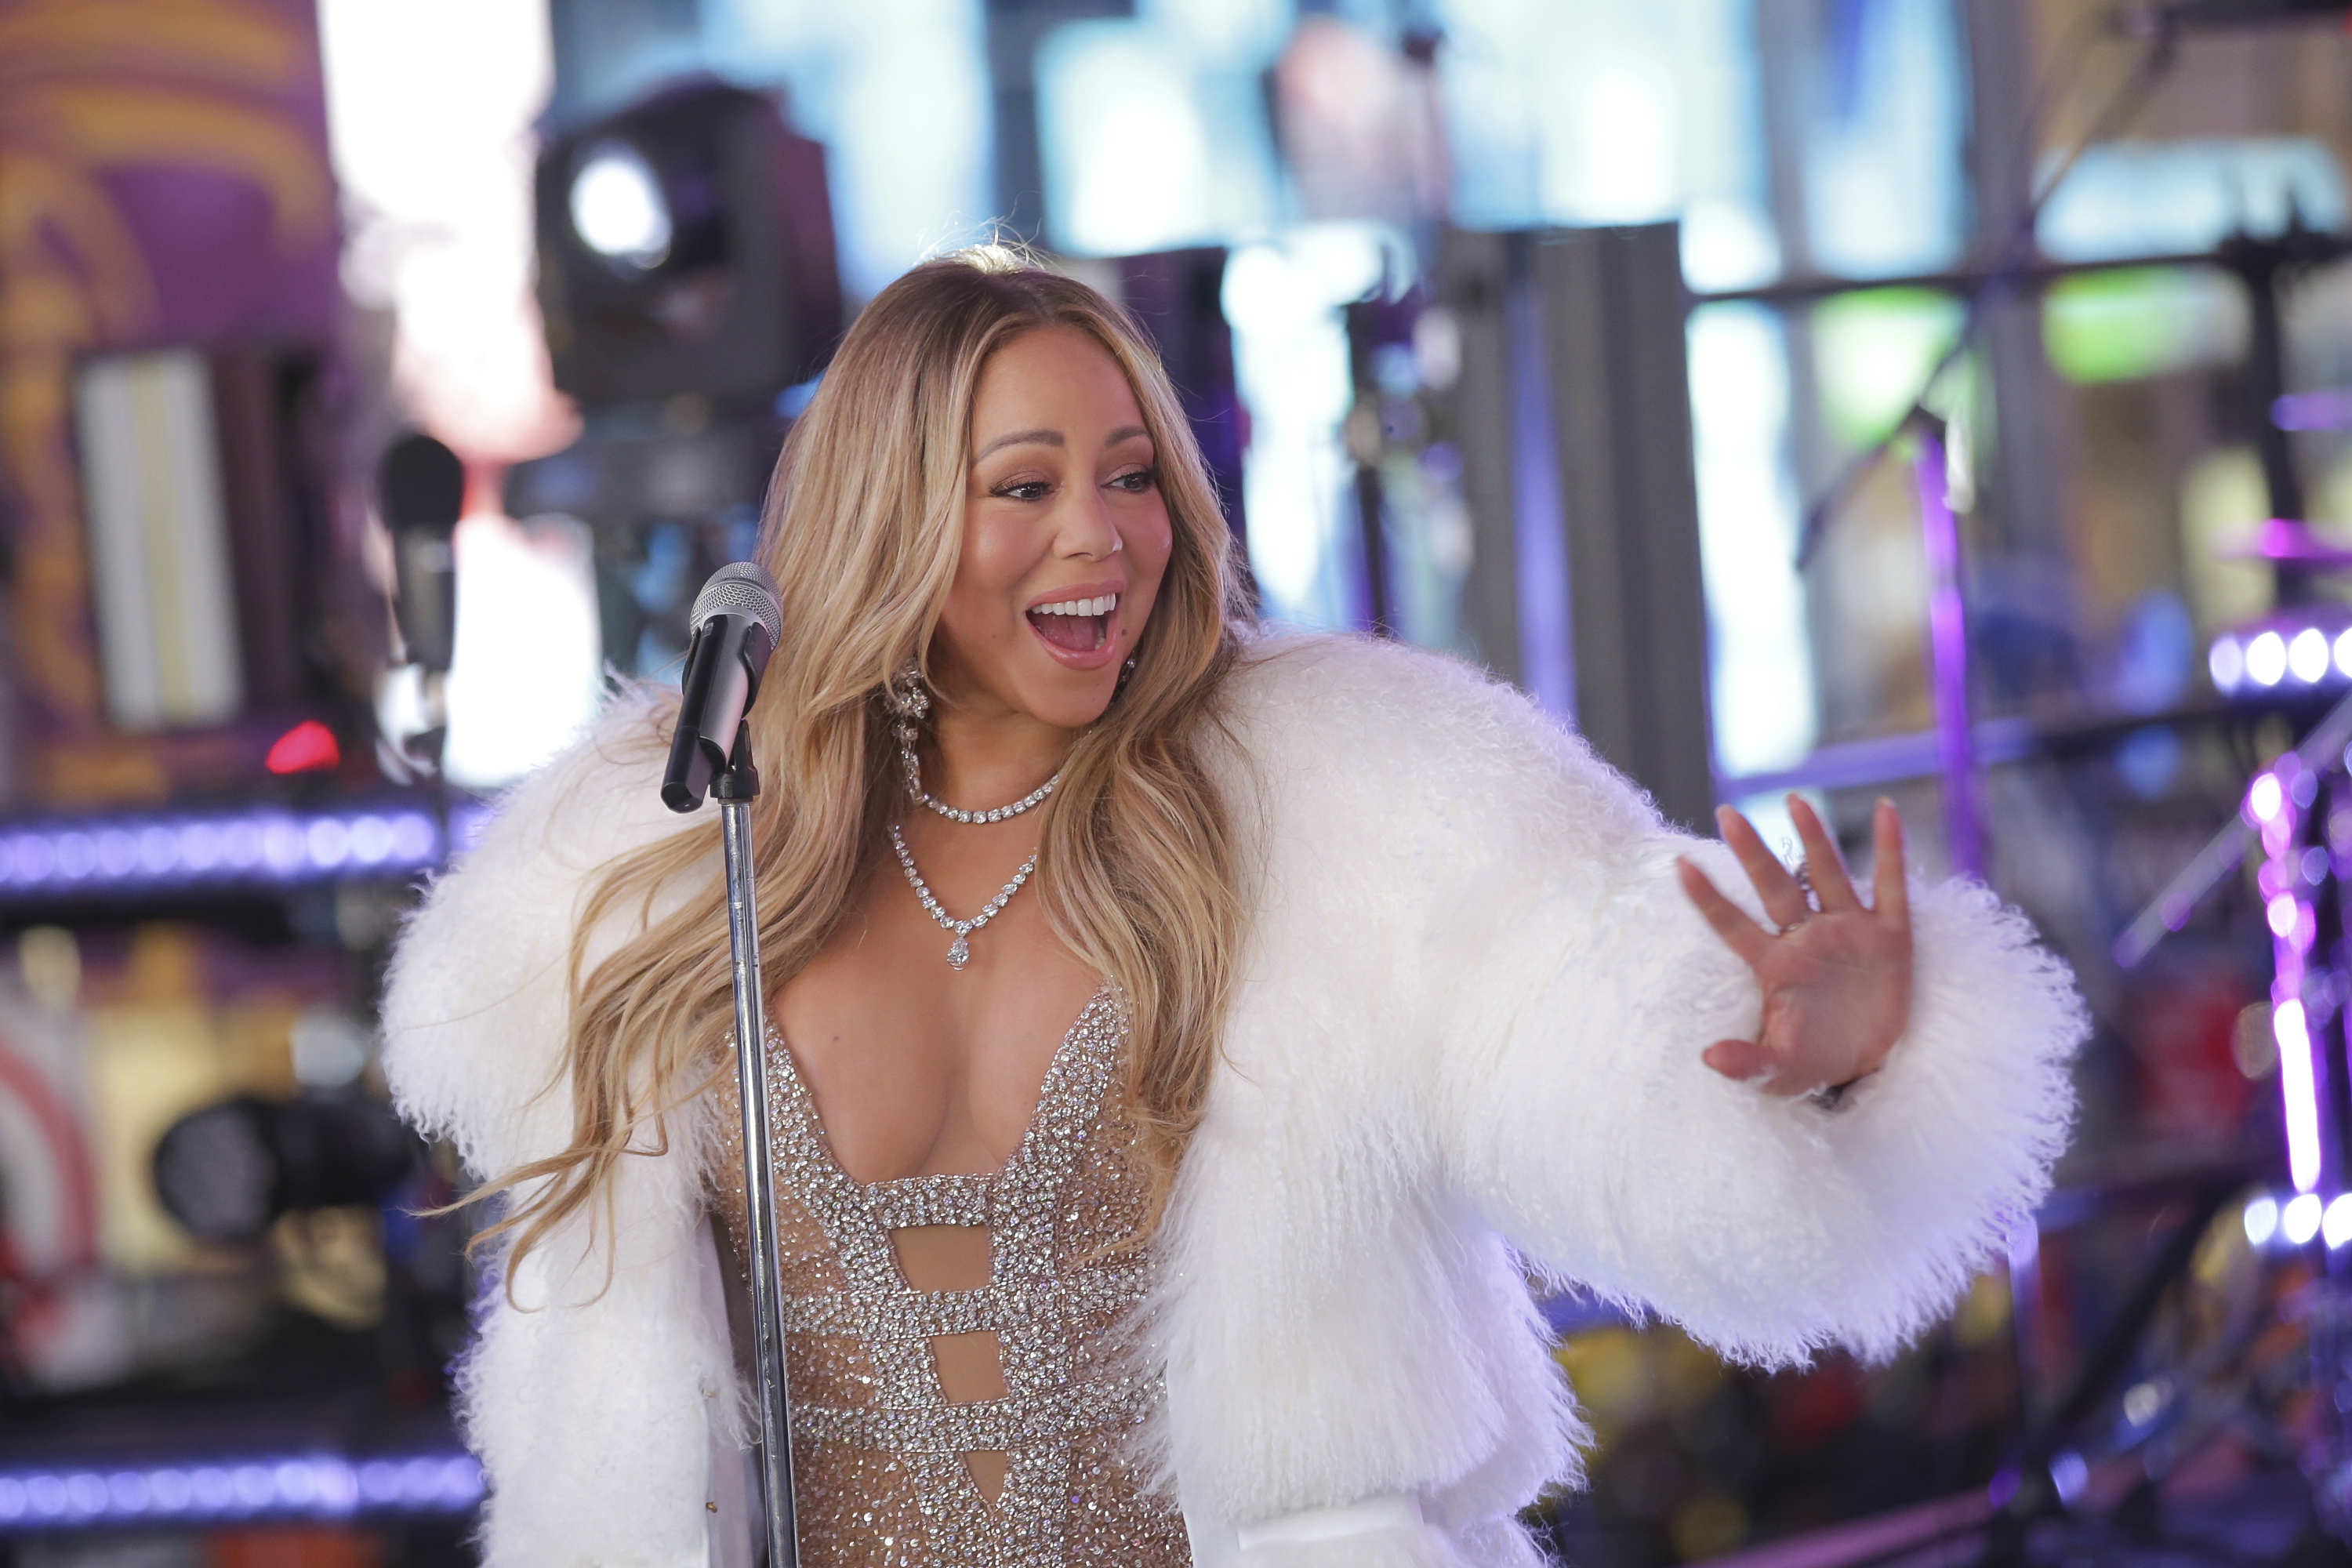 "<div class=""meta image-caption""><div class=""origin-logo origin-image ap""><span>AP</span></div><span class=""caption-text"">Mariah Carey performs on stage at the New Year's Eve celebration in Times Square on Sunday, Dec. 31, 2017, in New York. (Brent N. Clarke/Invision/AP)</span></div>"